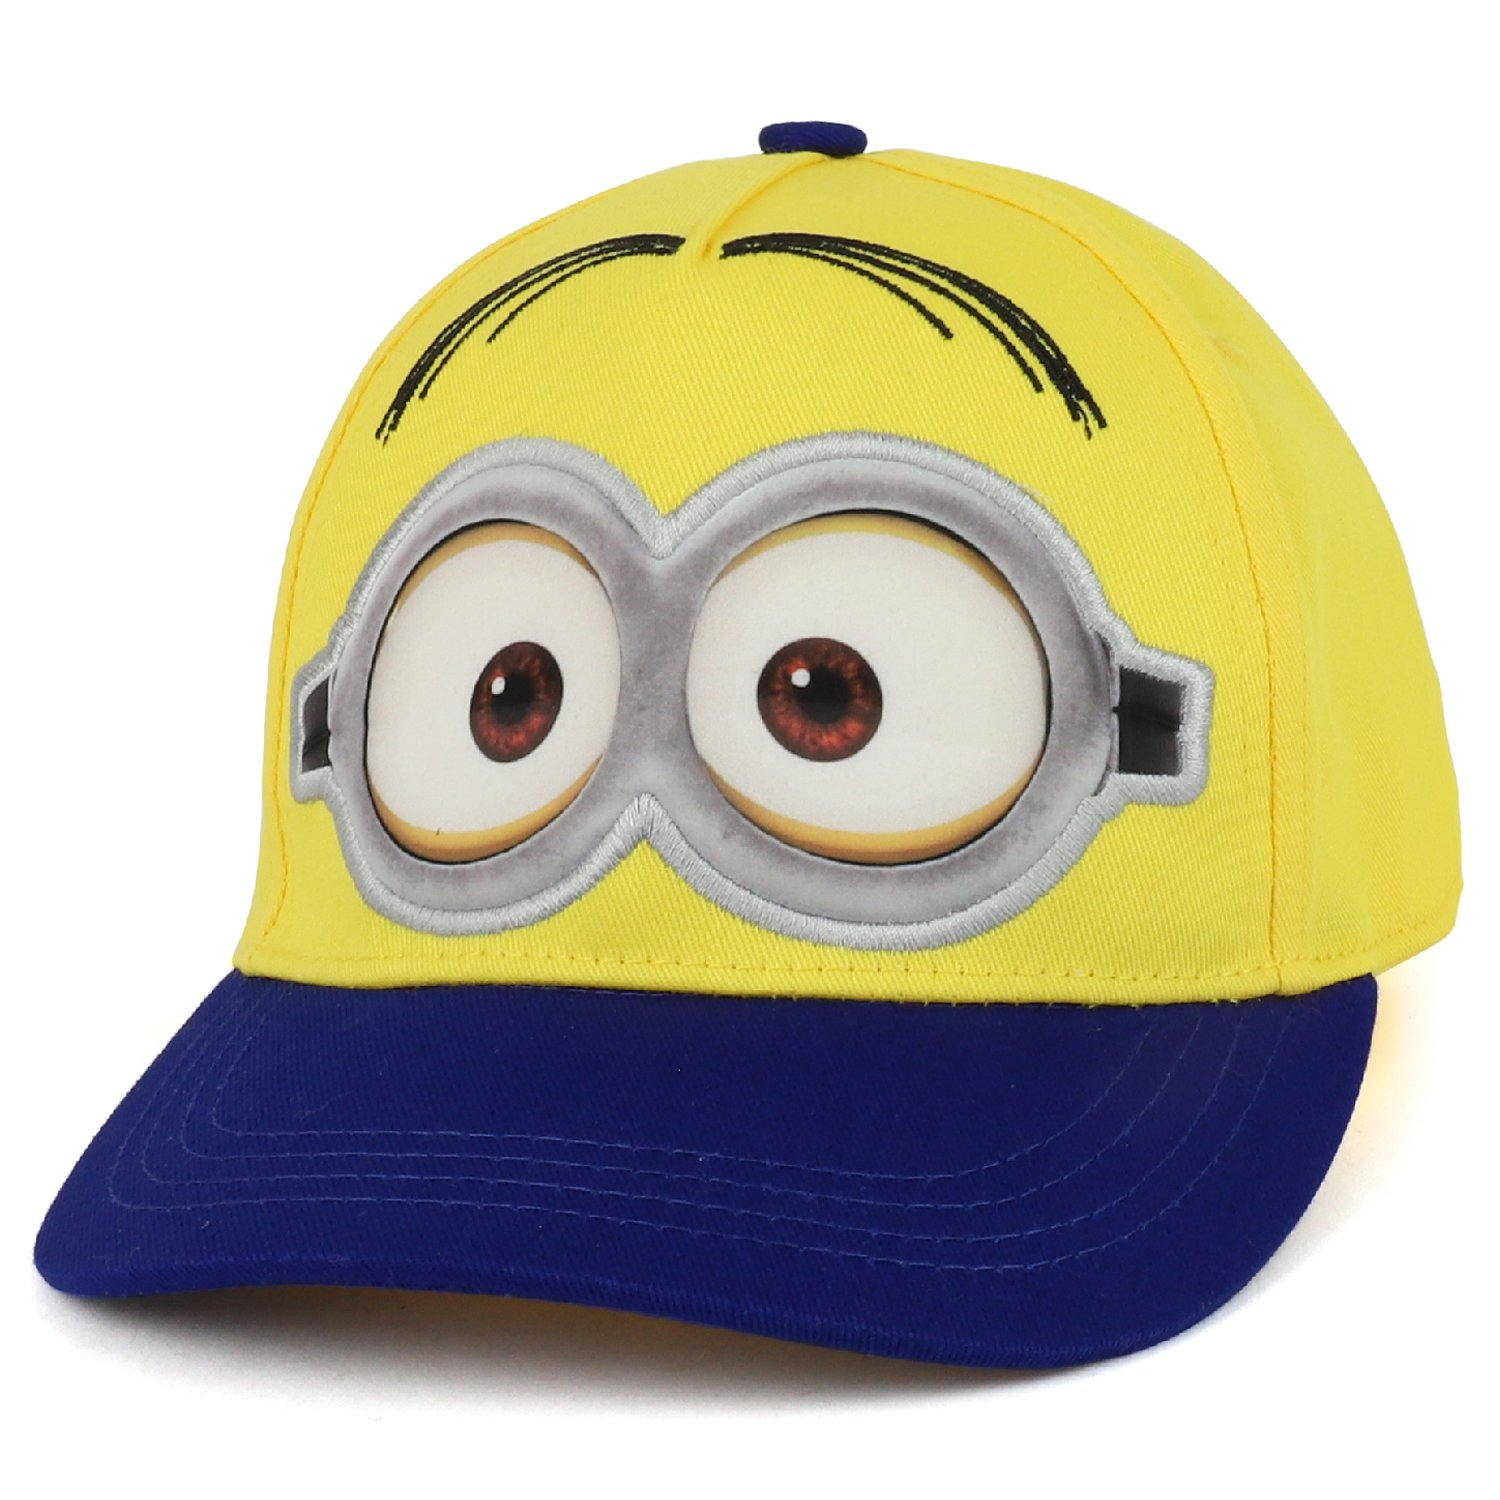 Trendy Apparel Shop Boys Kid's Despicable Me Minions Bob Blue Baseball Cap - Yellow by Trendy Apparel Shop (Image #1)